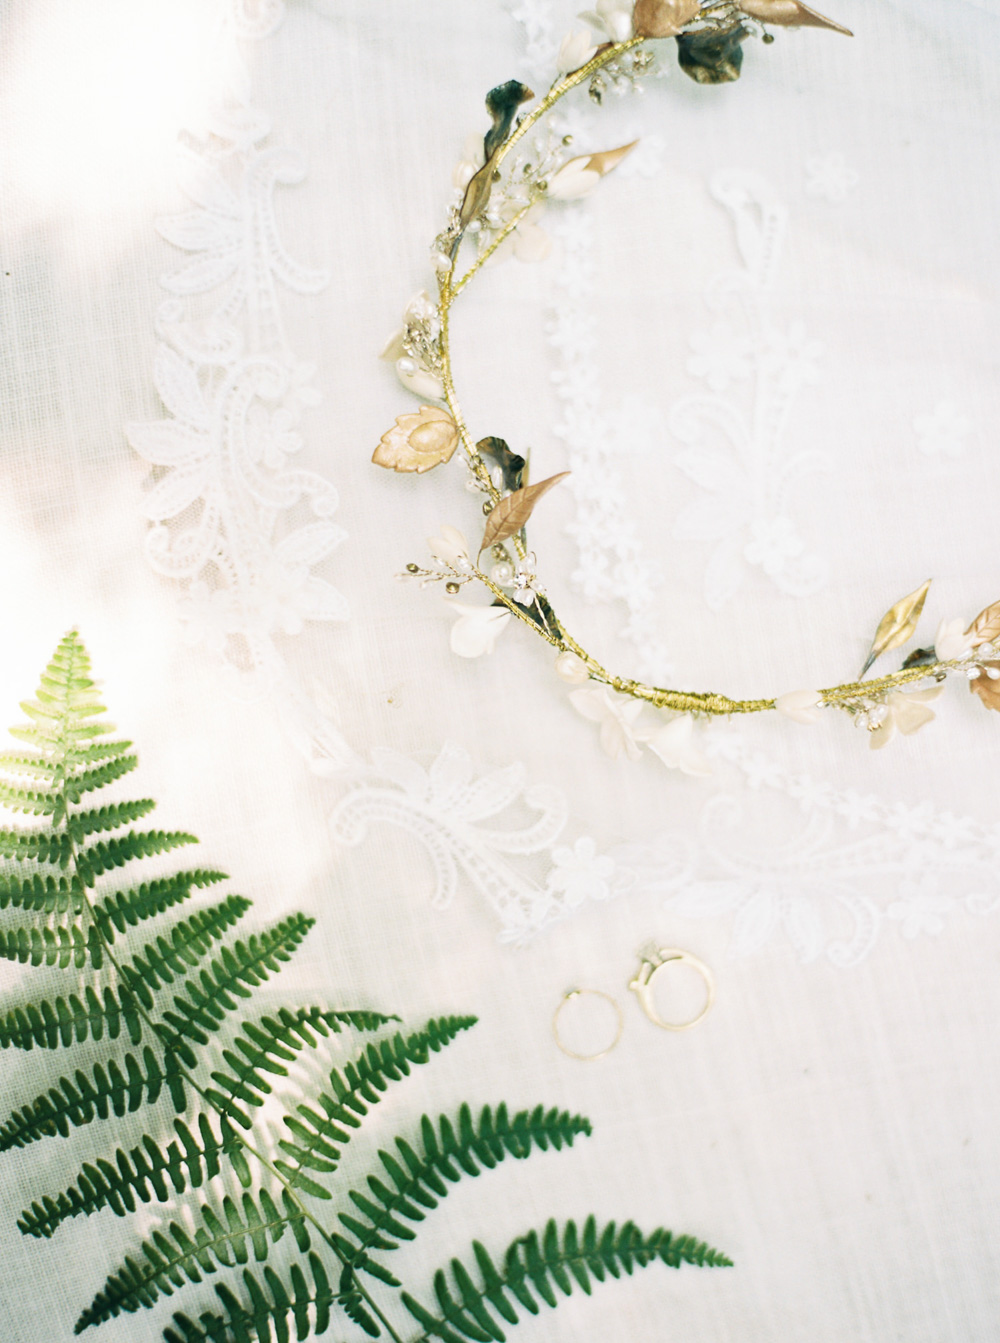 Bridal Details at Wellspring Spa Wedding at Mt. Rainier with Seattle Wedding Photographer Anna Peters